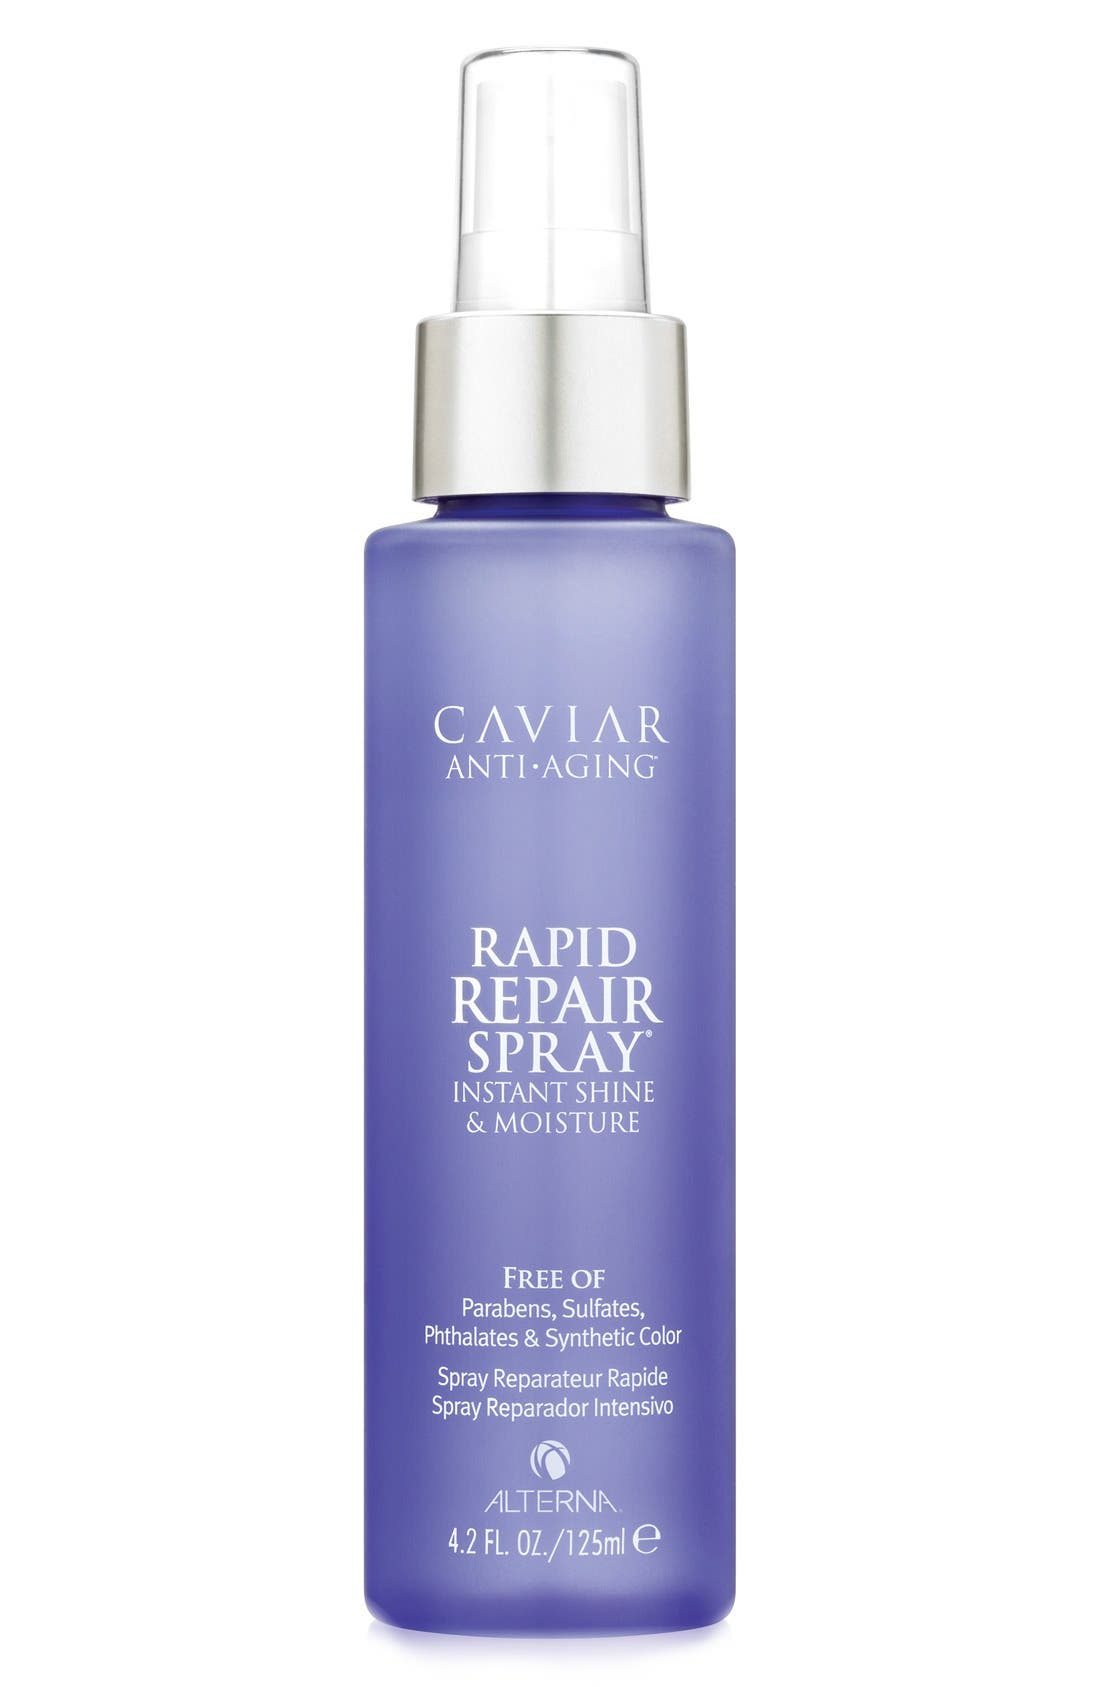 ALTERNA® Caviar Anti-Aging Rapid Repair Spray